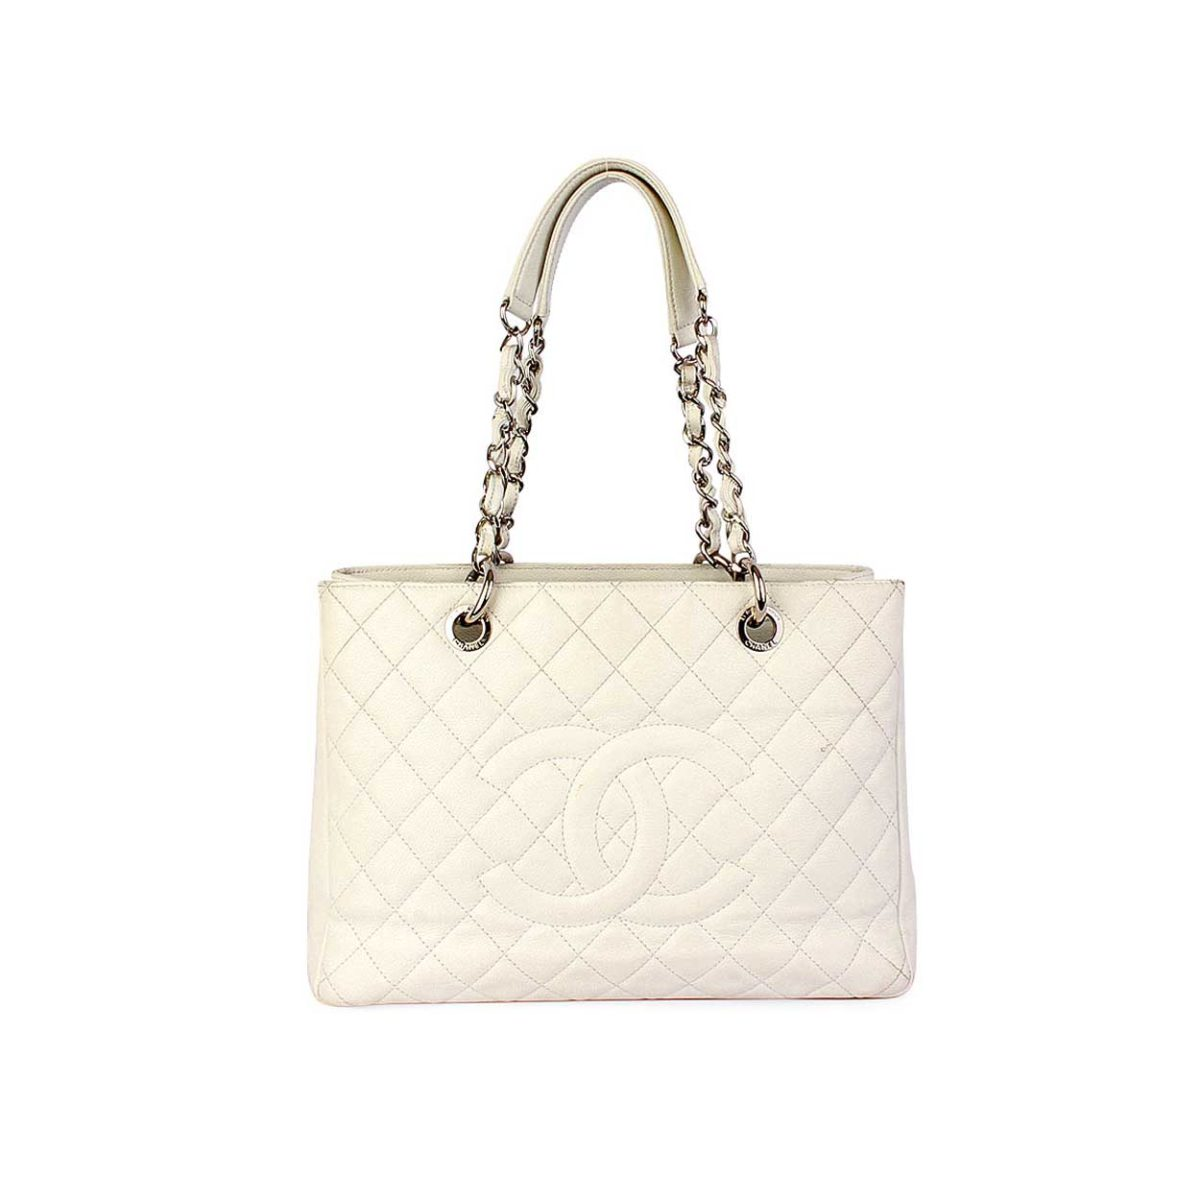 31e289d59614 CHANEL Quilted Leather Grand Shopping Tote White | Luxity